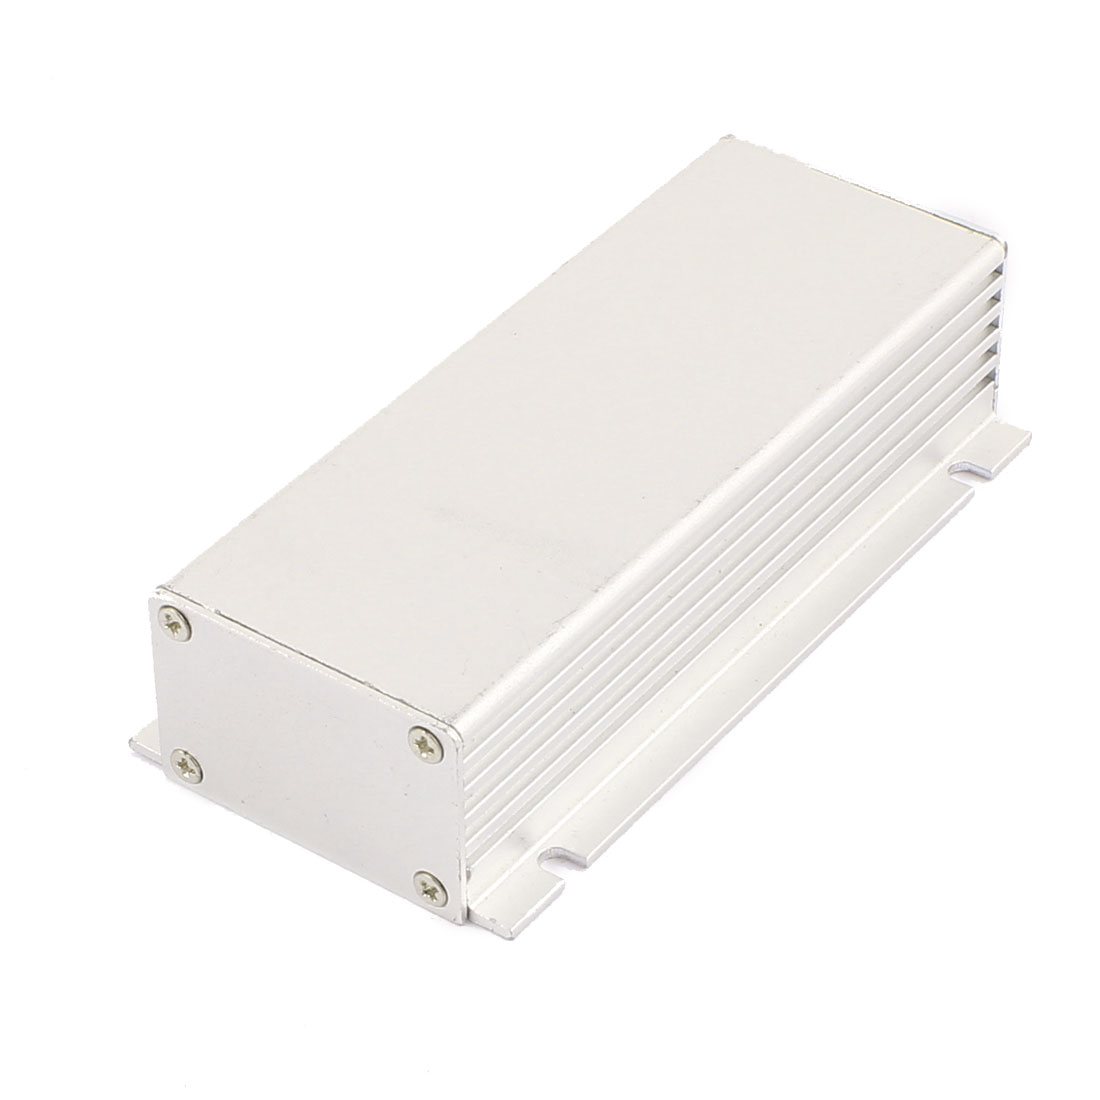 113 x 55 x 28mm Multi-purpose Electronic Extruded Aluminum Enclosure Silver Tone